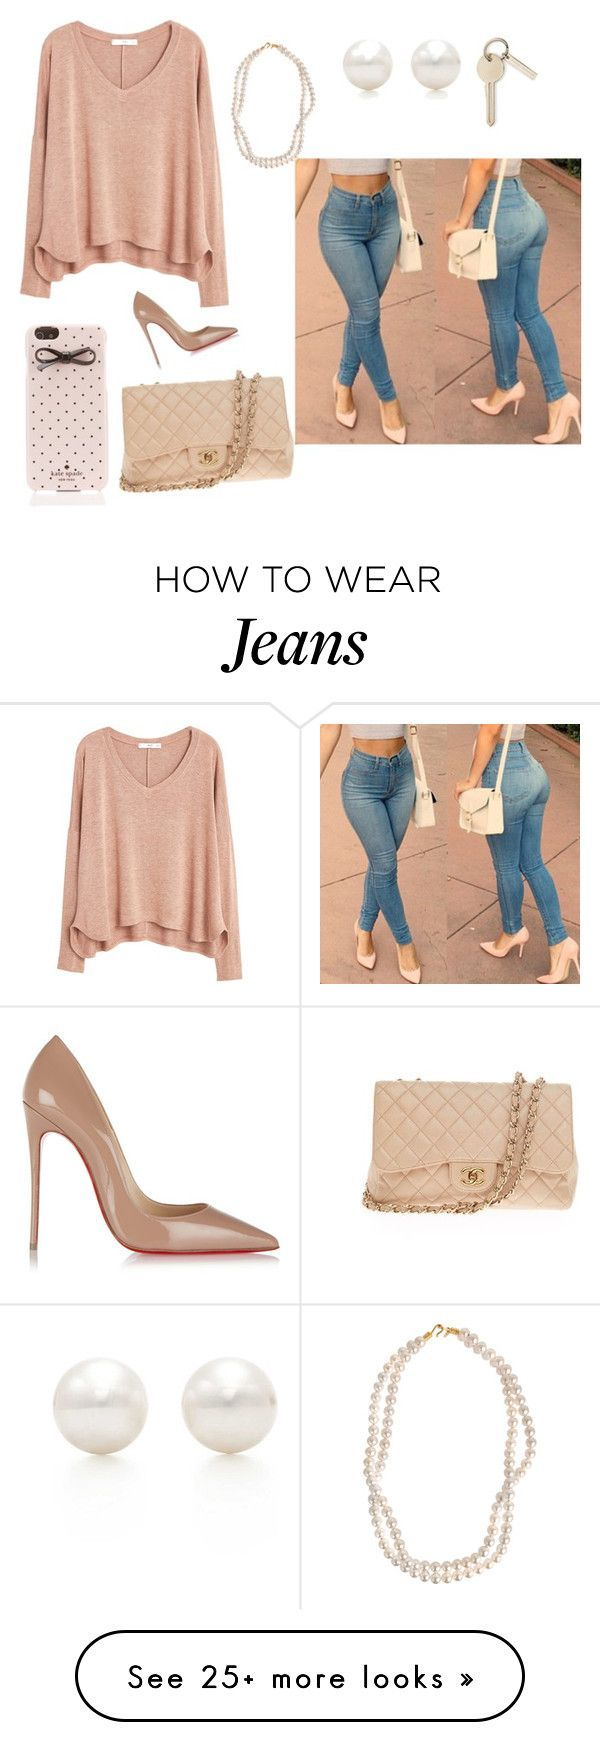 """""""Nude and jeans"""" by lovelydarkangel on Polyvore featuring MANGO, STELLA McCARTNEY, Tiffany & Co., Kate Spade, Christian Louboutin and Chanel"""